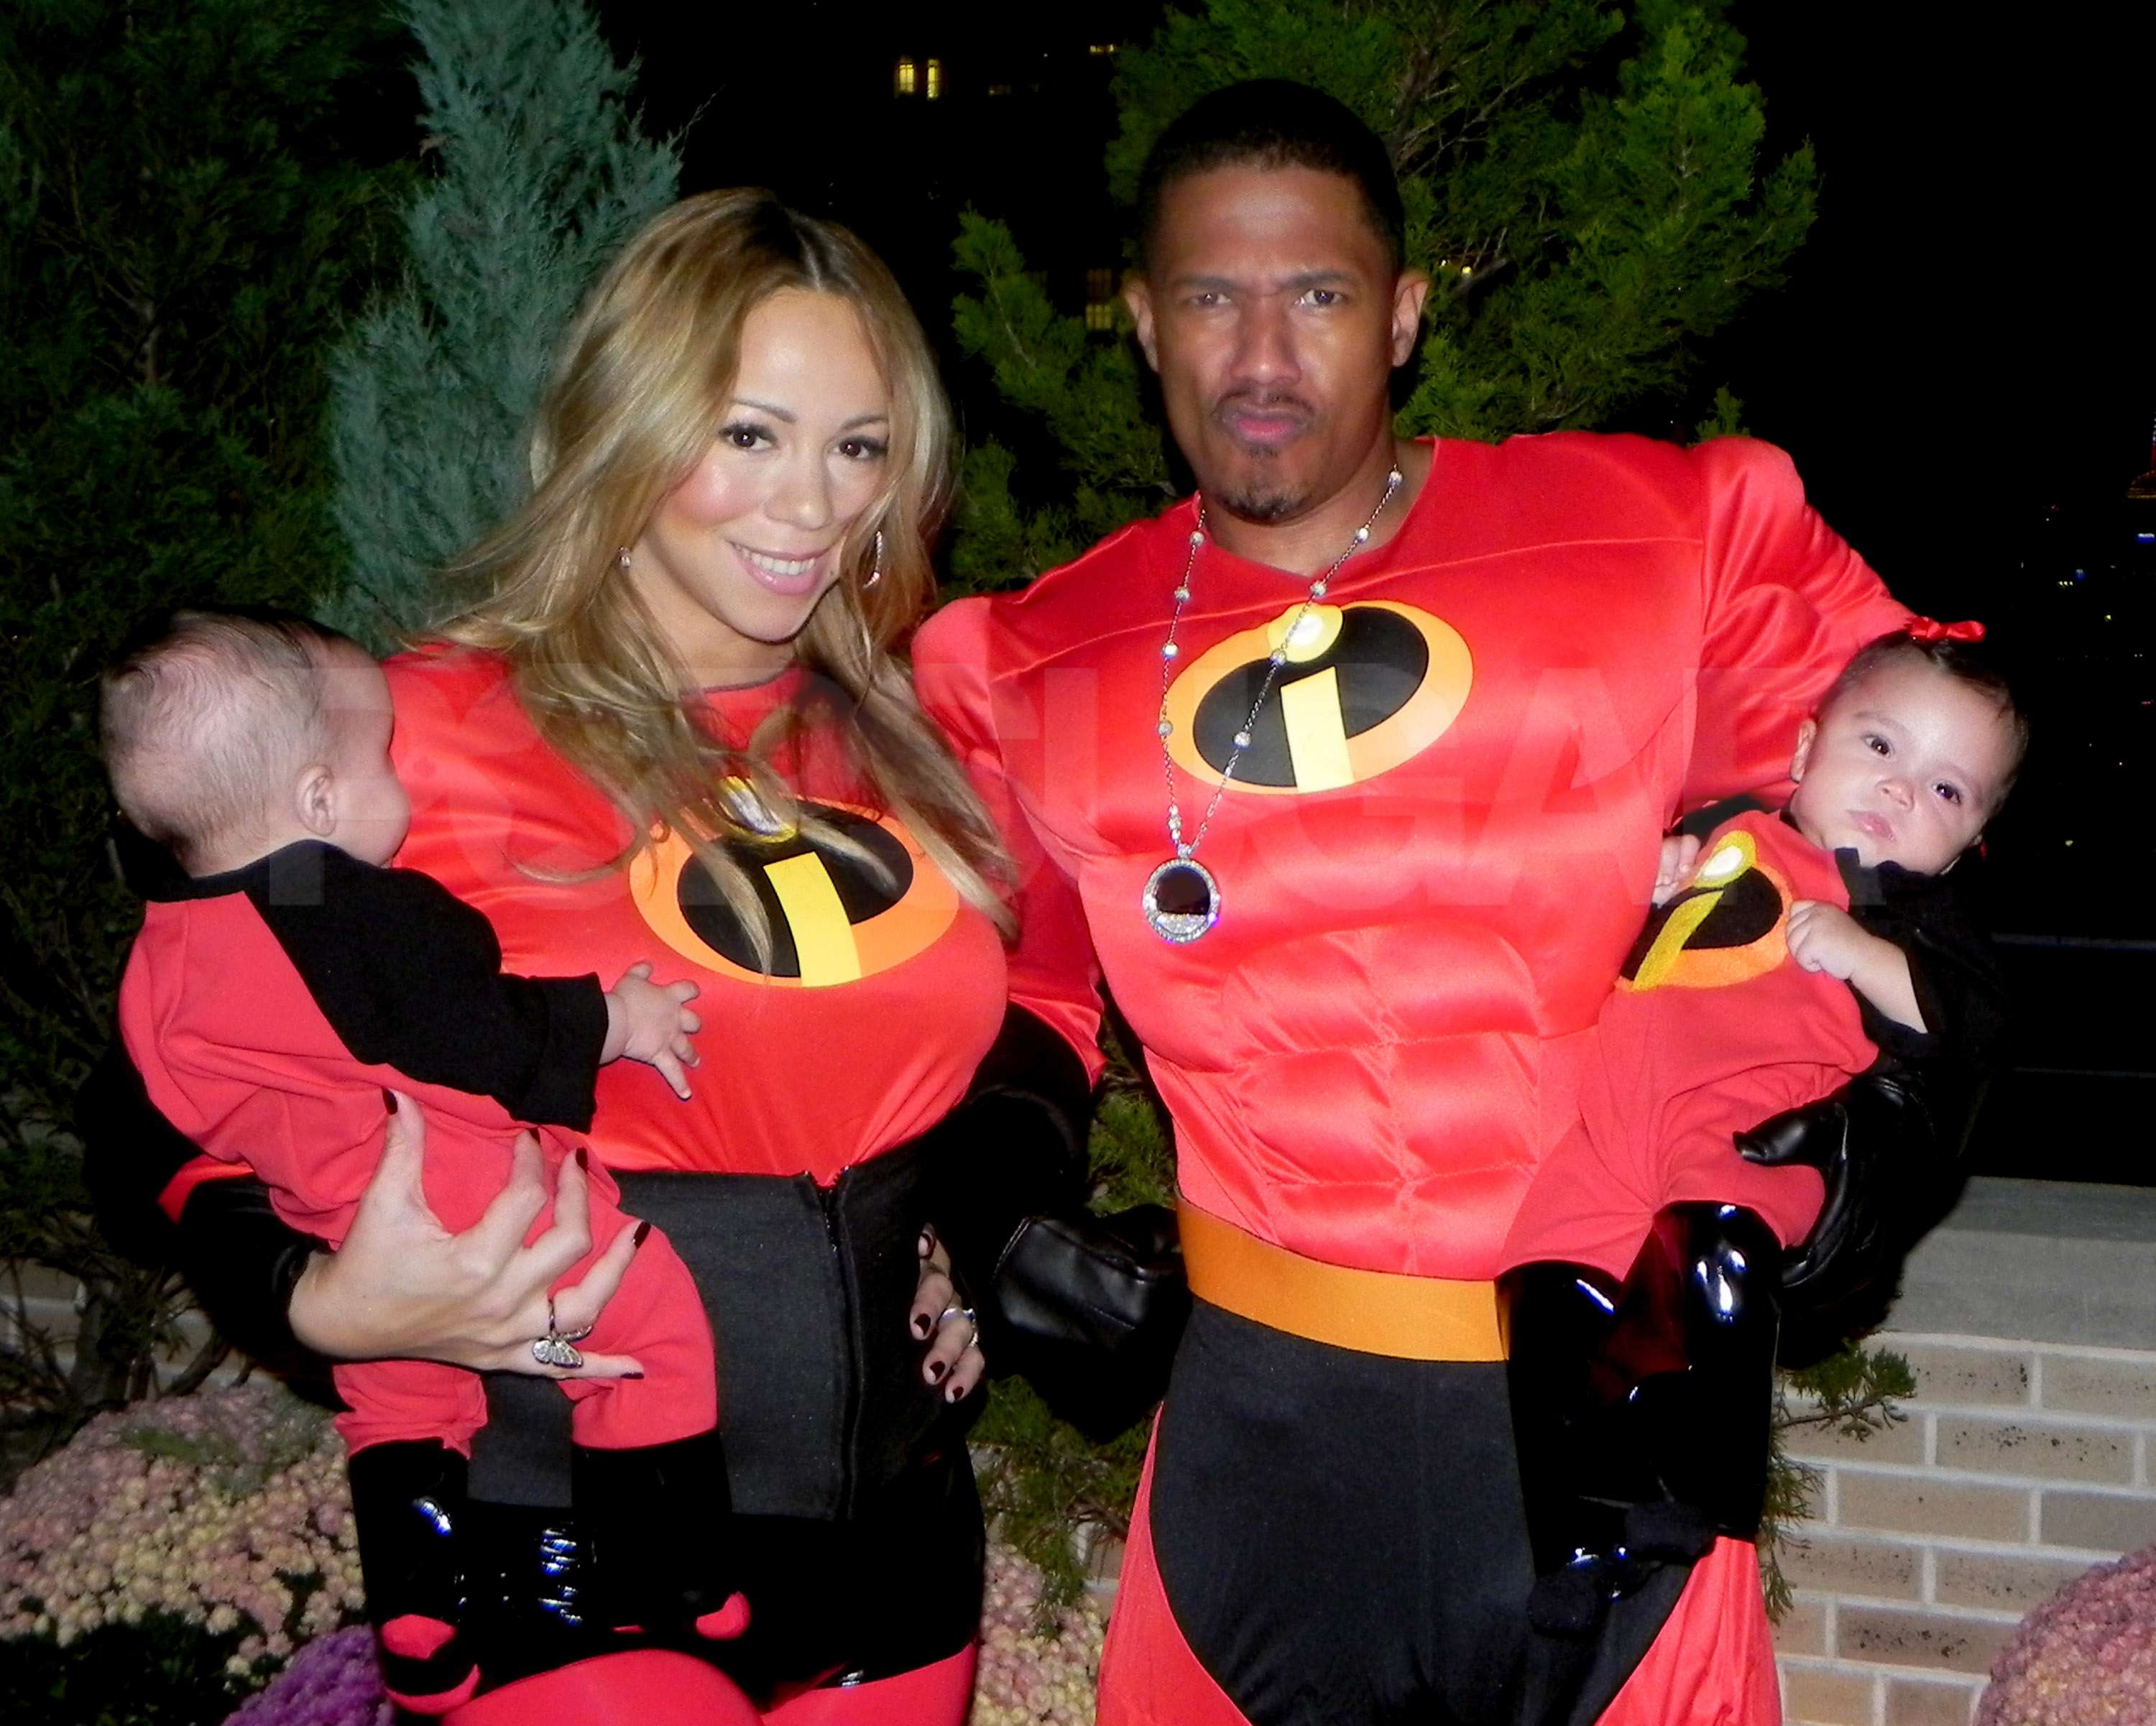 Epic Family Halloween Costumes  sc 1 st  Kelly Rowland & Epic Family Halloween Costumes - The Incredibles | Kelly Rowland